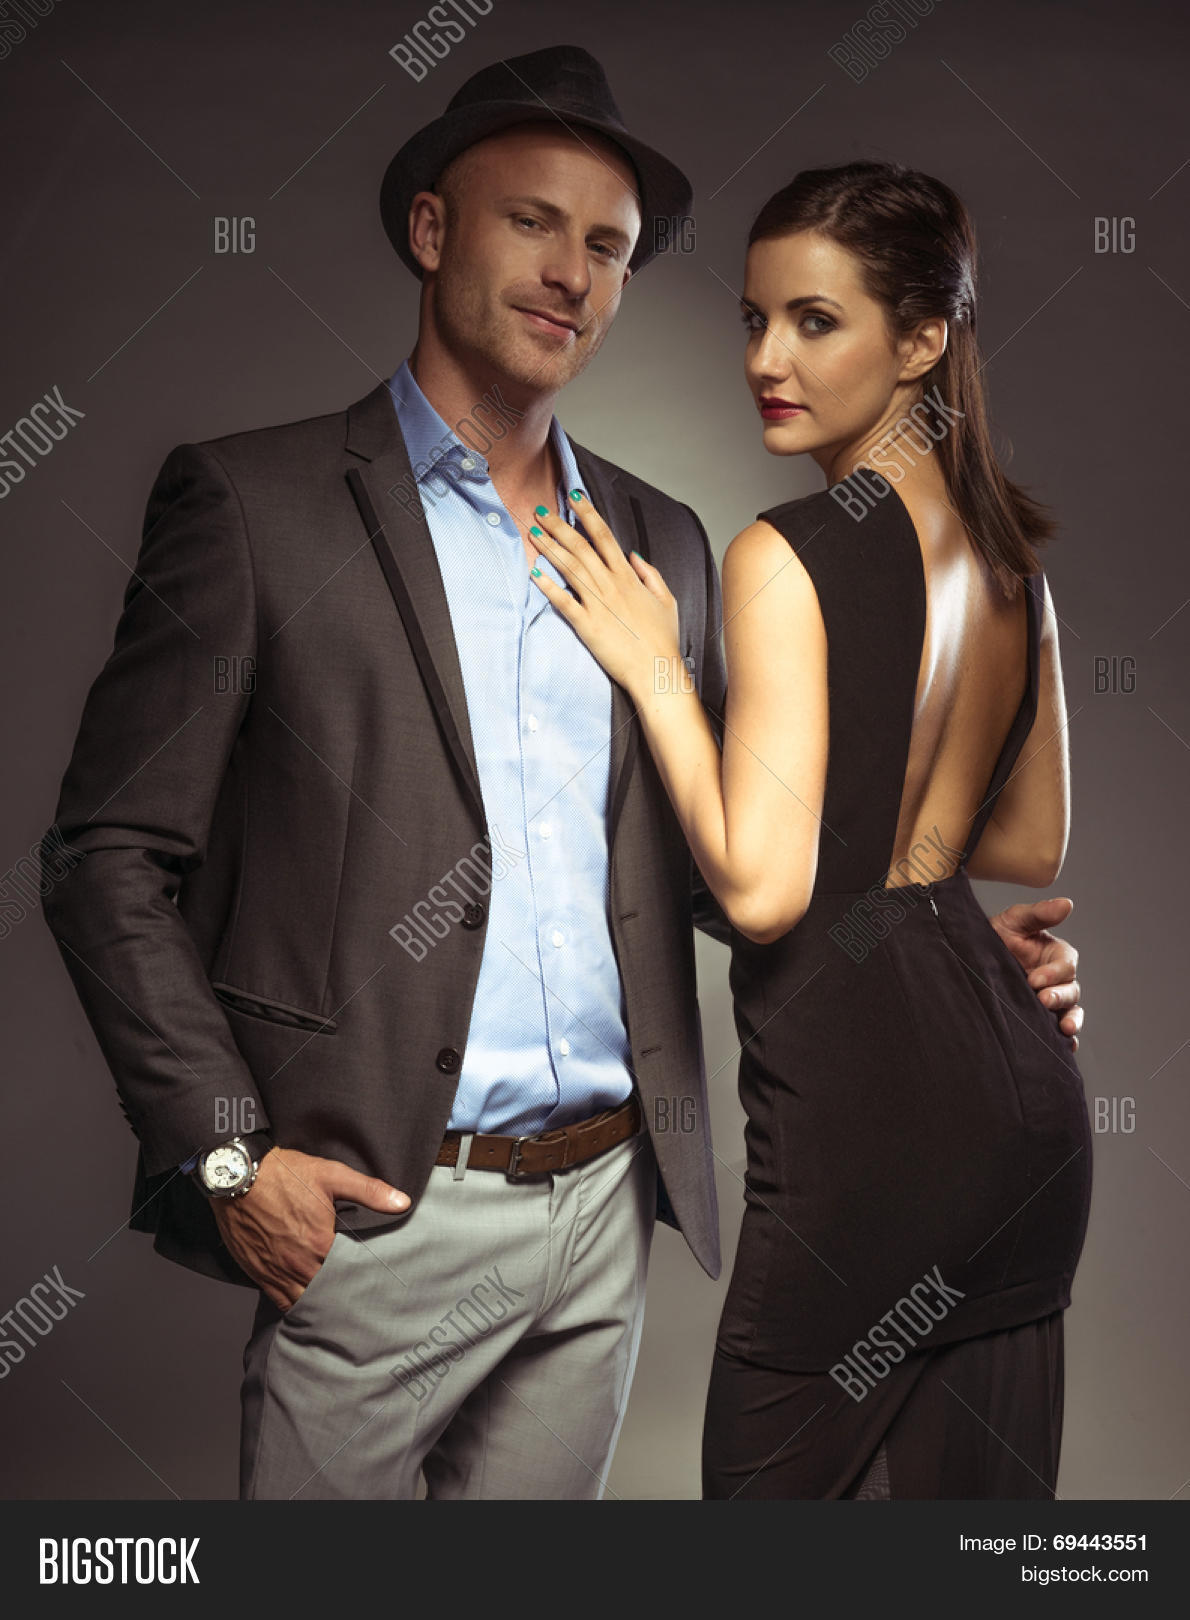 e4035753639 Attractive sexy couple in trendy evening wear on a romantic night out  standing in an intimate